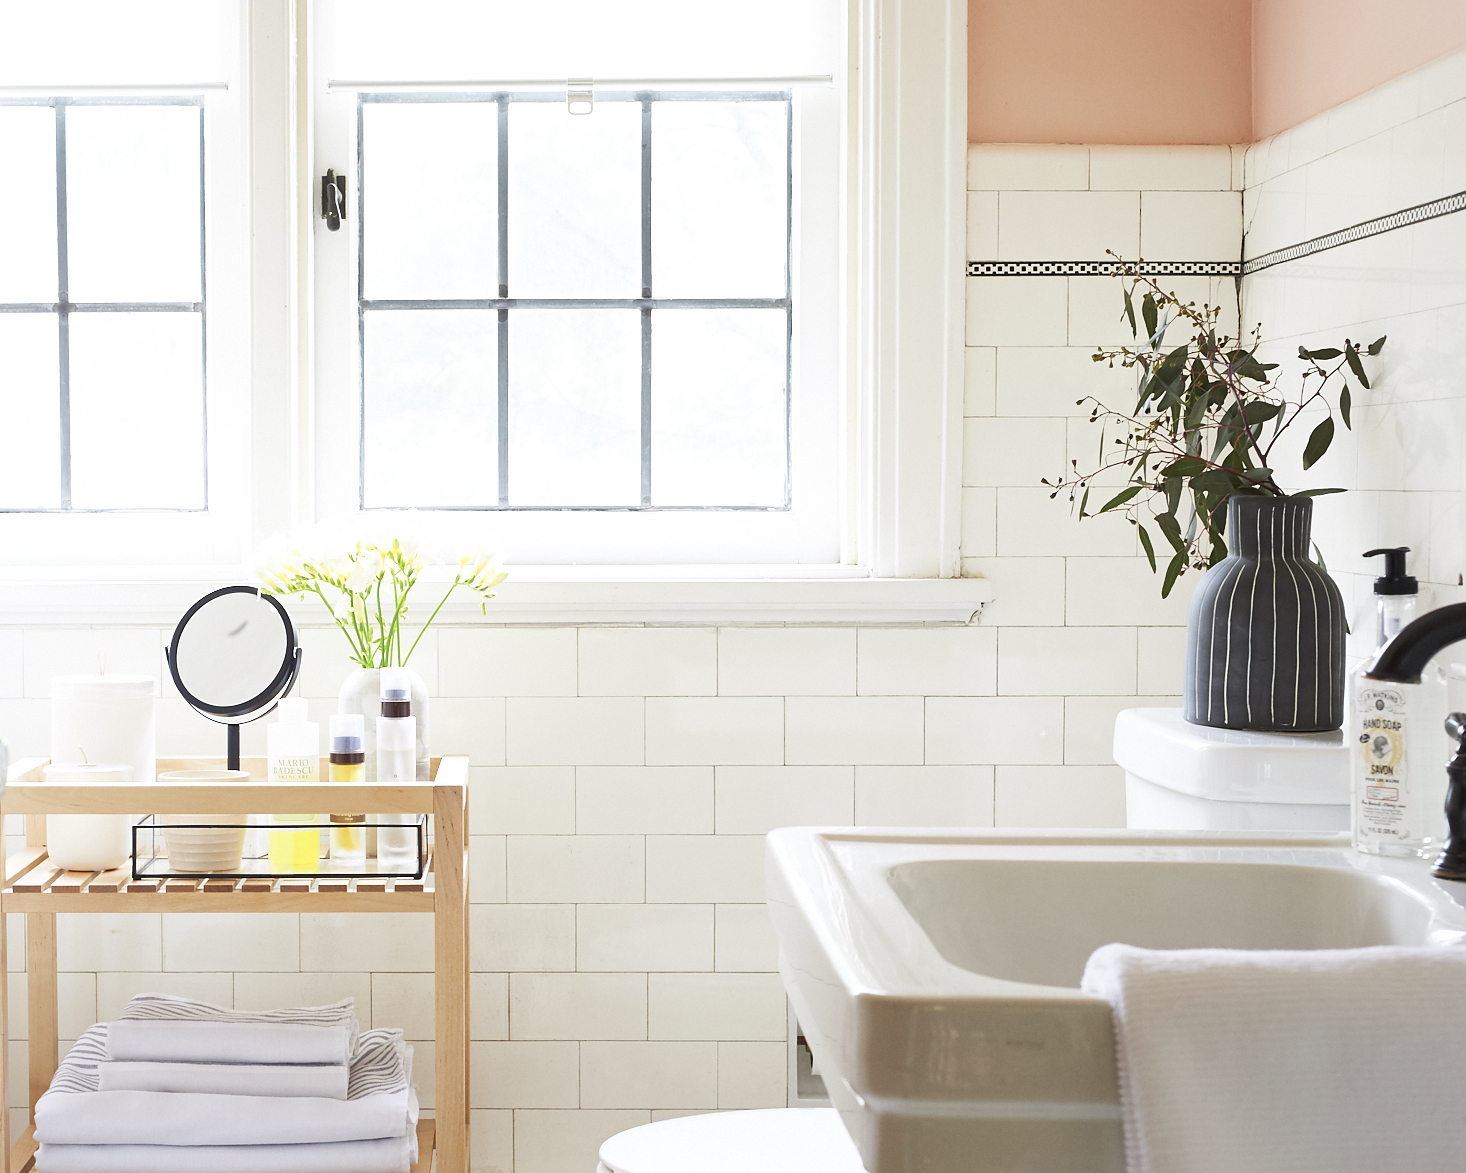 Classic blush bathroom with Serena & Lily Towels